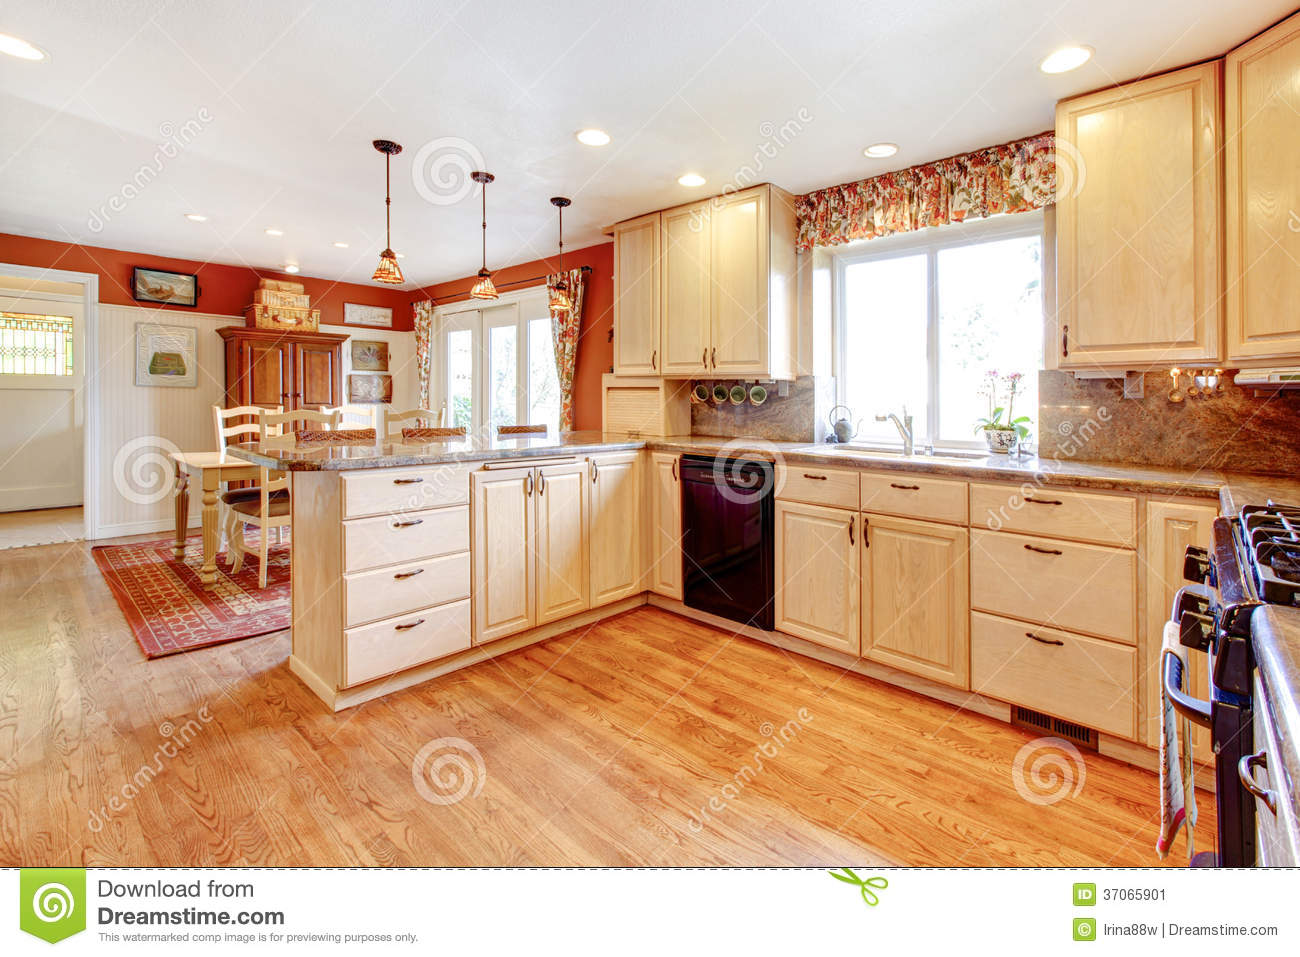 Small Enclosed Kitchen Design Simple Warm Colors Kitchen Room With A Small Dining Area Stock Image